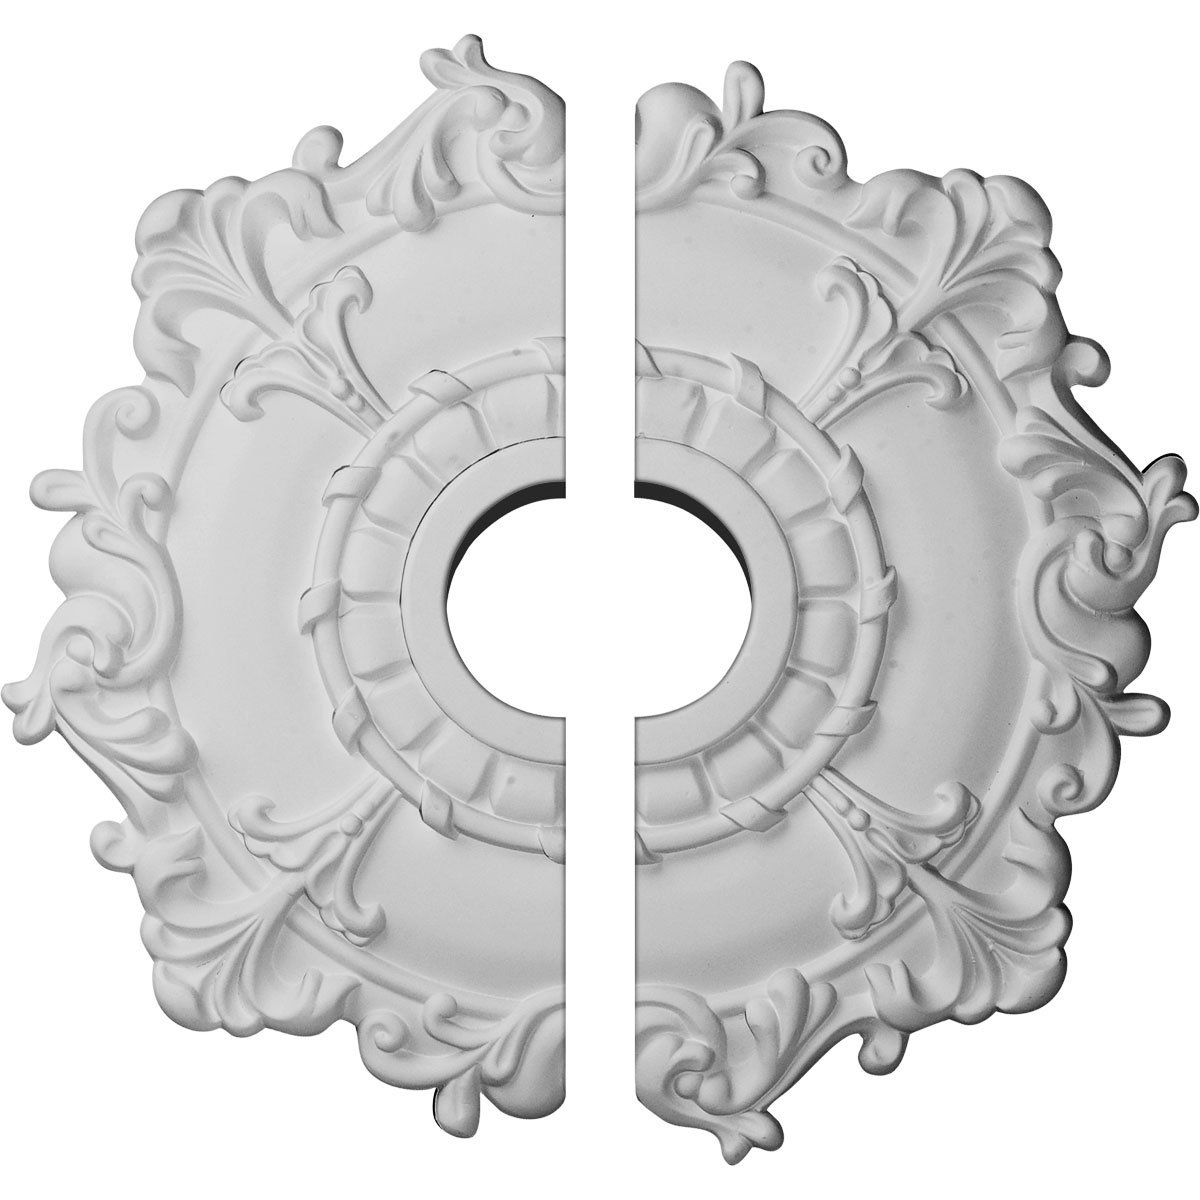 Ekena Millwork CM18RL2 18'' OD x 3 ID x 1 1/2'' P Riley Ceiling Medallion, Two Piece (Fits Canopies up to 4 5/8''), Factory Primed and Ready to Paint